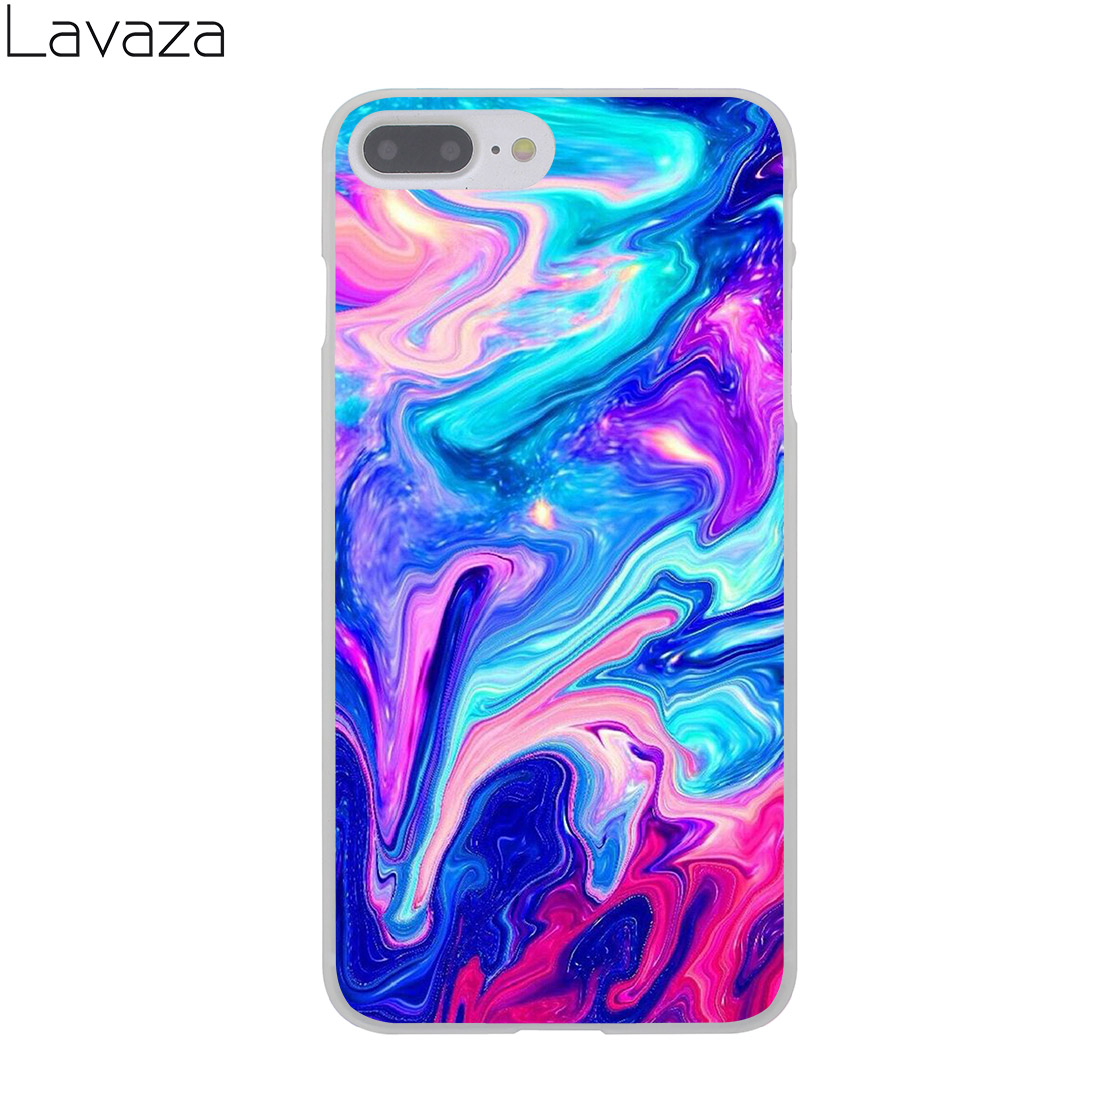 new products 383fe 54903 US $2.55 |Lavaza Abstract Rainbow Ripple Tie Dye art Hard Cover Case for  iPhone X XS Max XR 6 6S 7 8 Plus 5 5S SE 5C 4S 10 Phone Cases-in  Half-wrapped ...